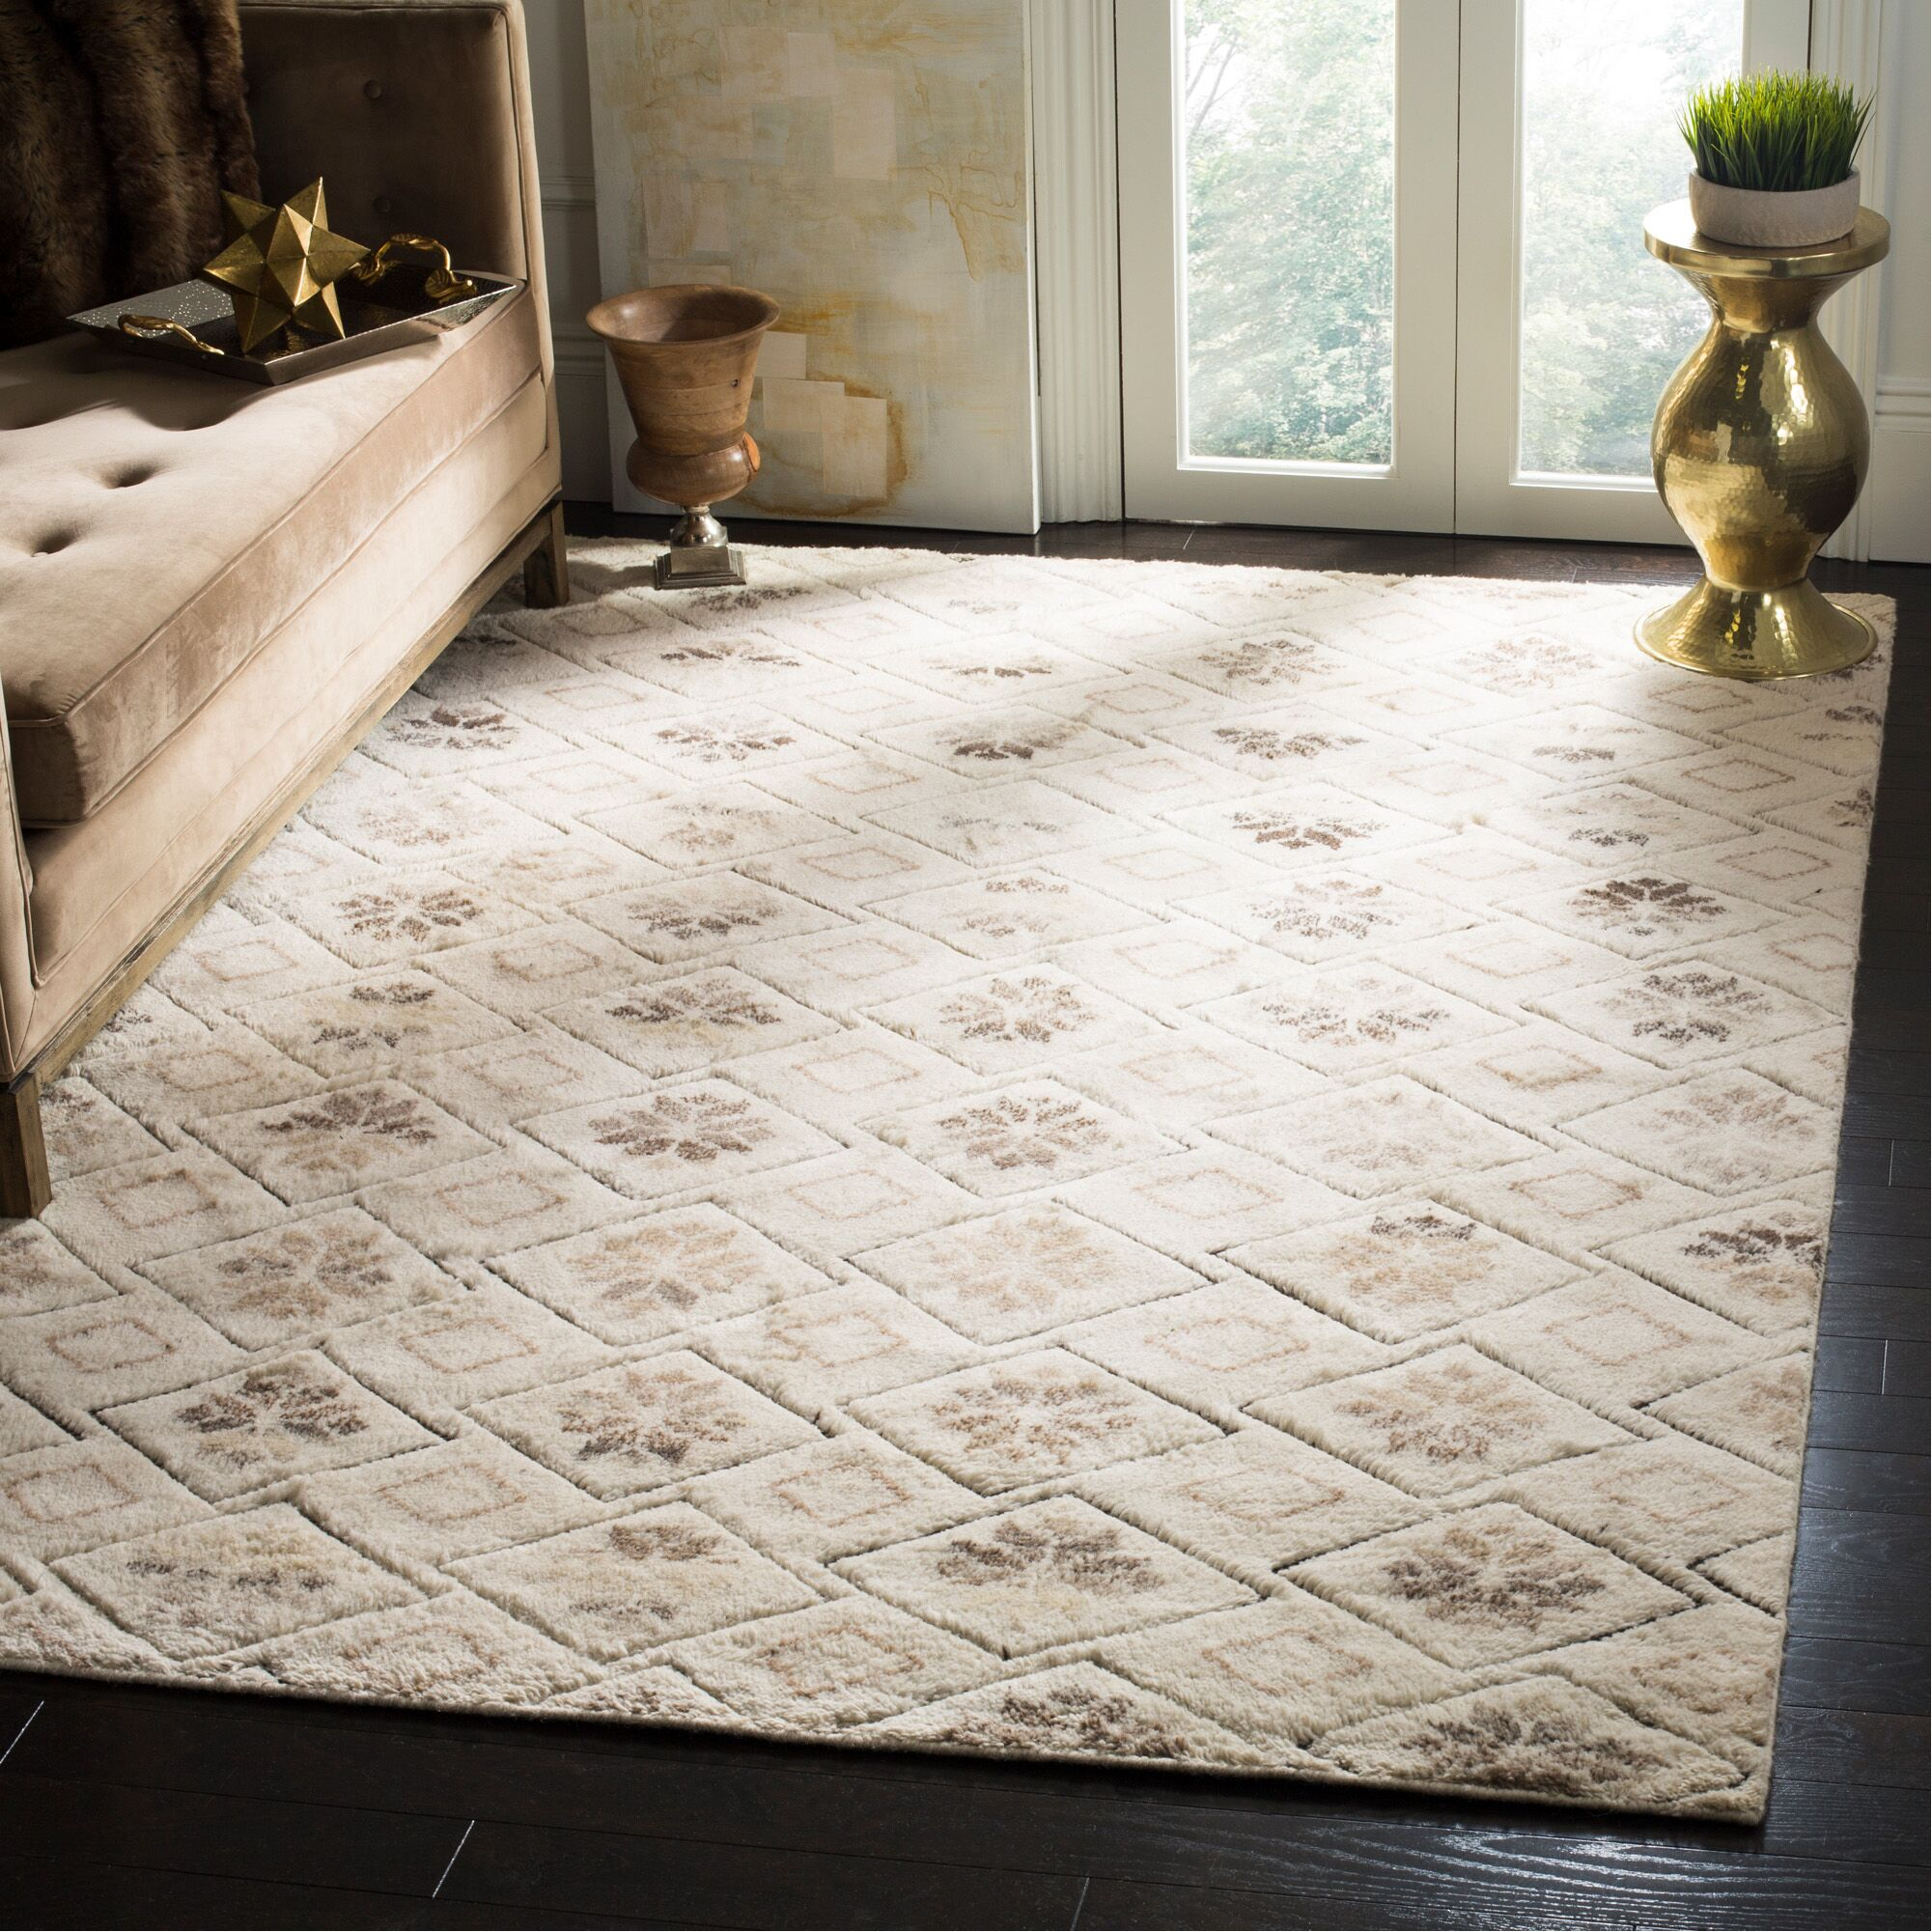 Eldert Hand-Knotted Ivory Area Rug Rug Size: Rectangle 6' x 9'